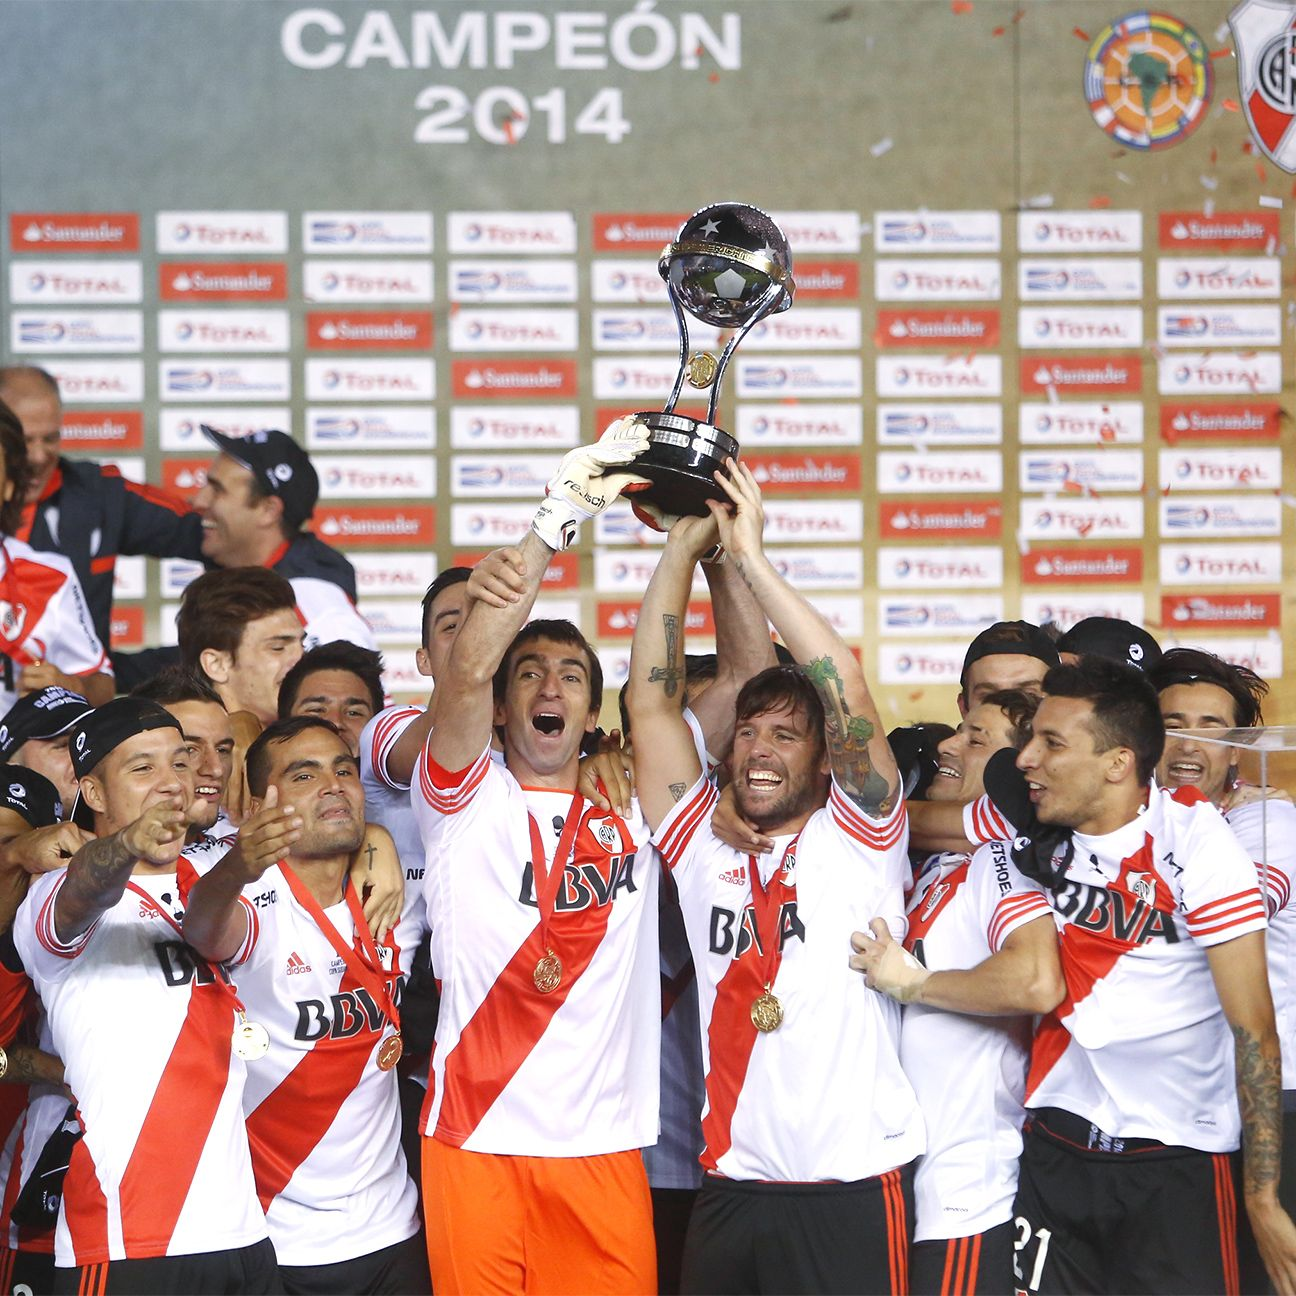 After claiming the 2014 Copa Sudamericana, River Plate are looking to follow that up by winning the Copa Libertadores.